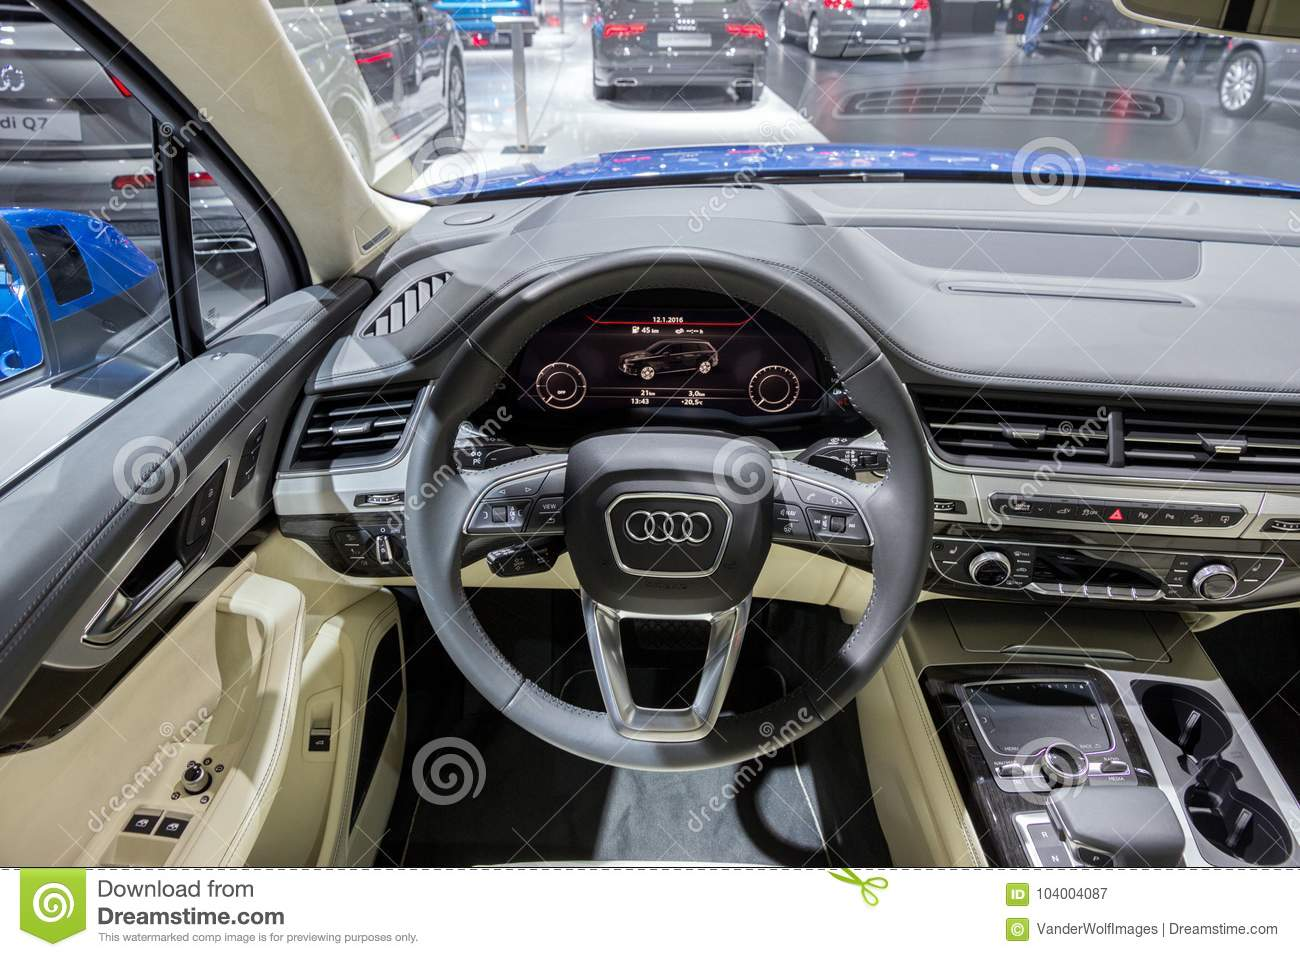 Audi Q7 Car Interior Dashboard Editorial Photography Image Of